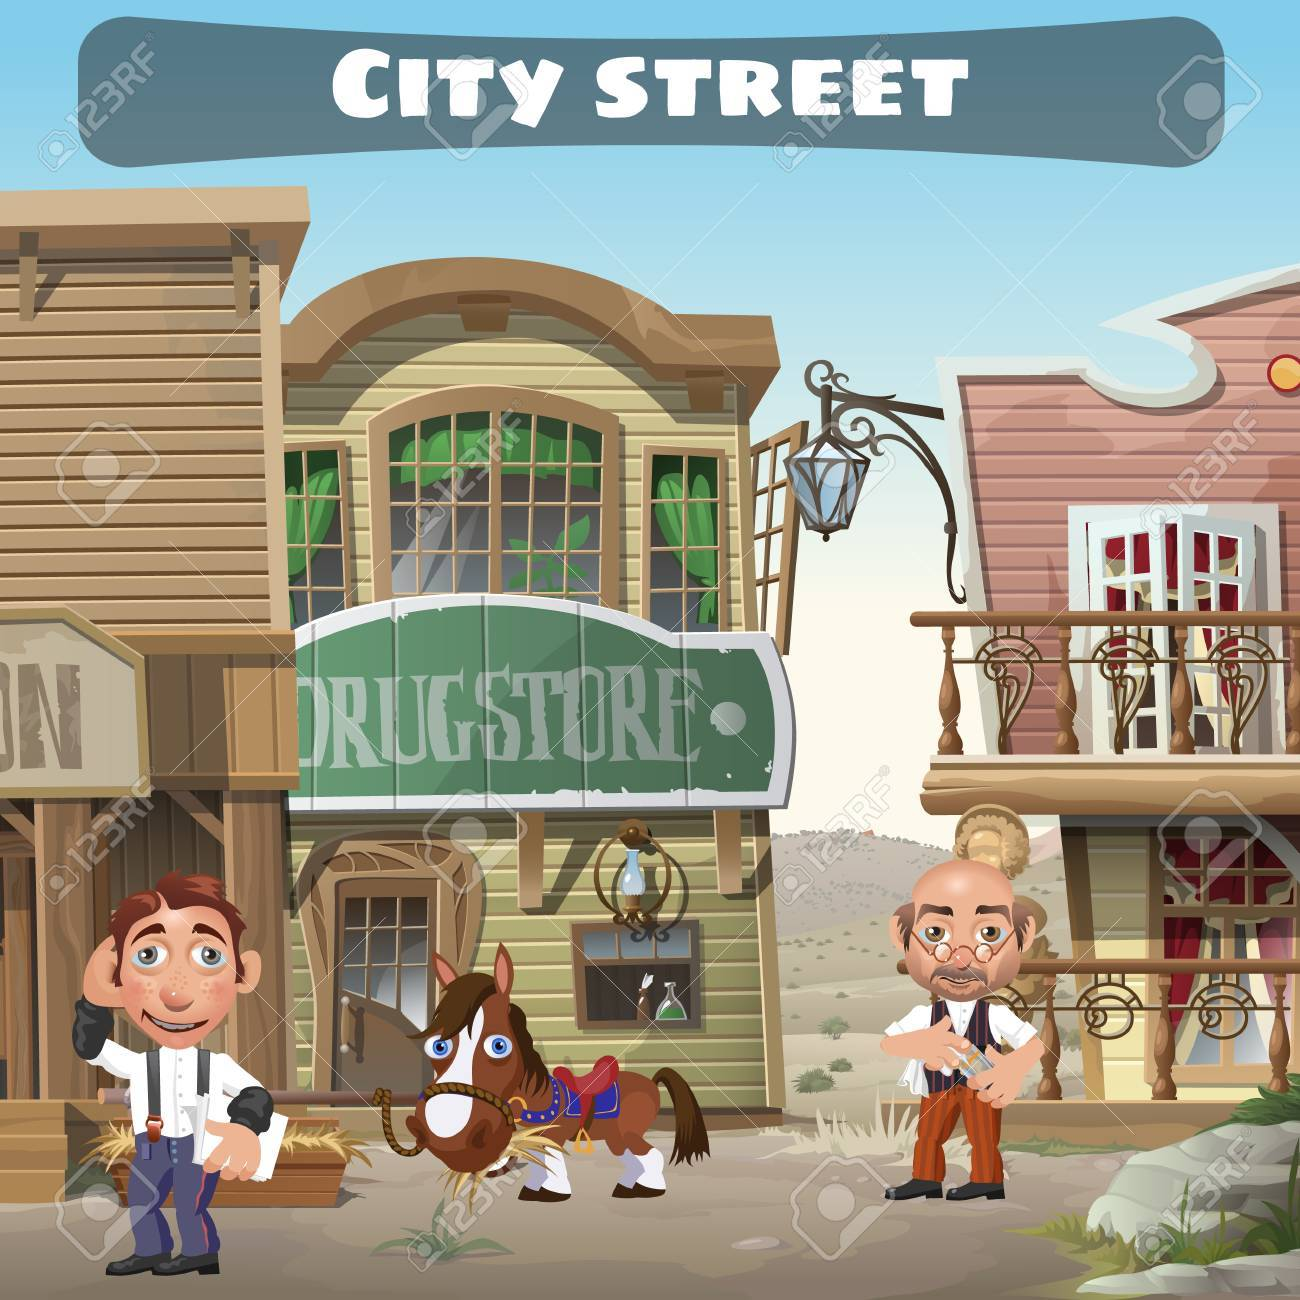 Usual city street in the wild West, two residents, houses, horse - 49495481